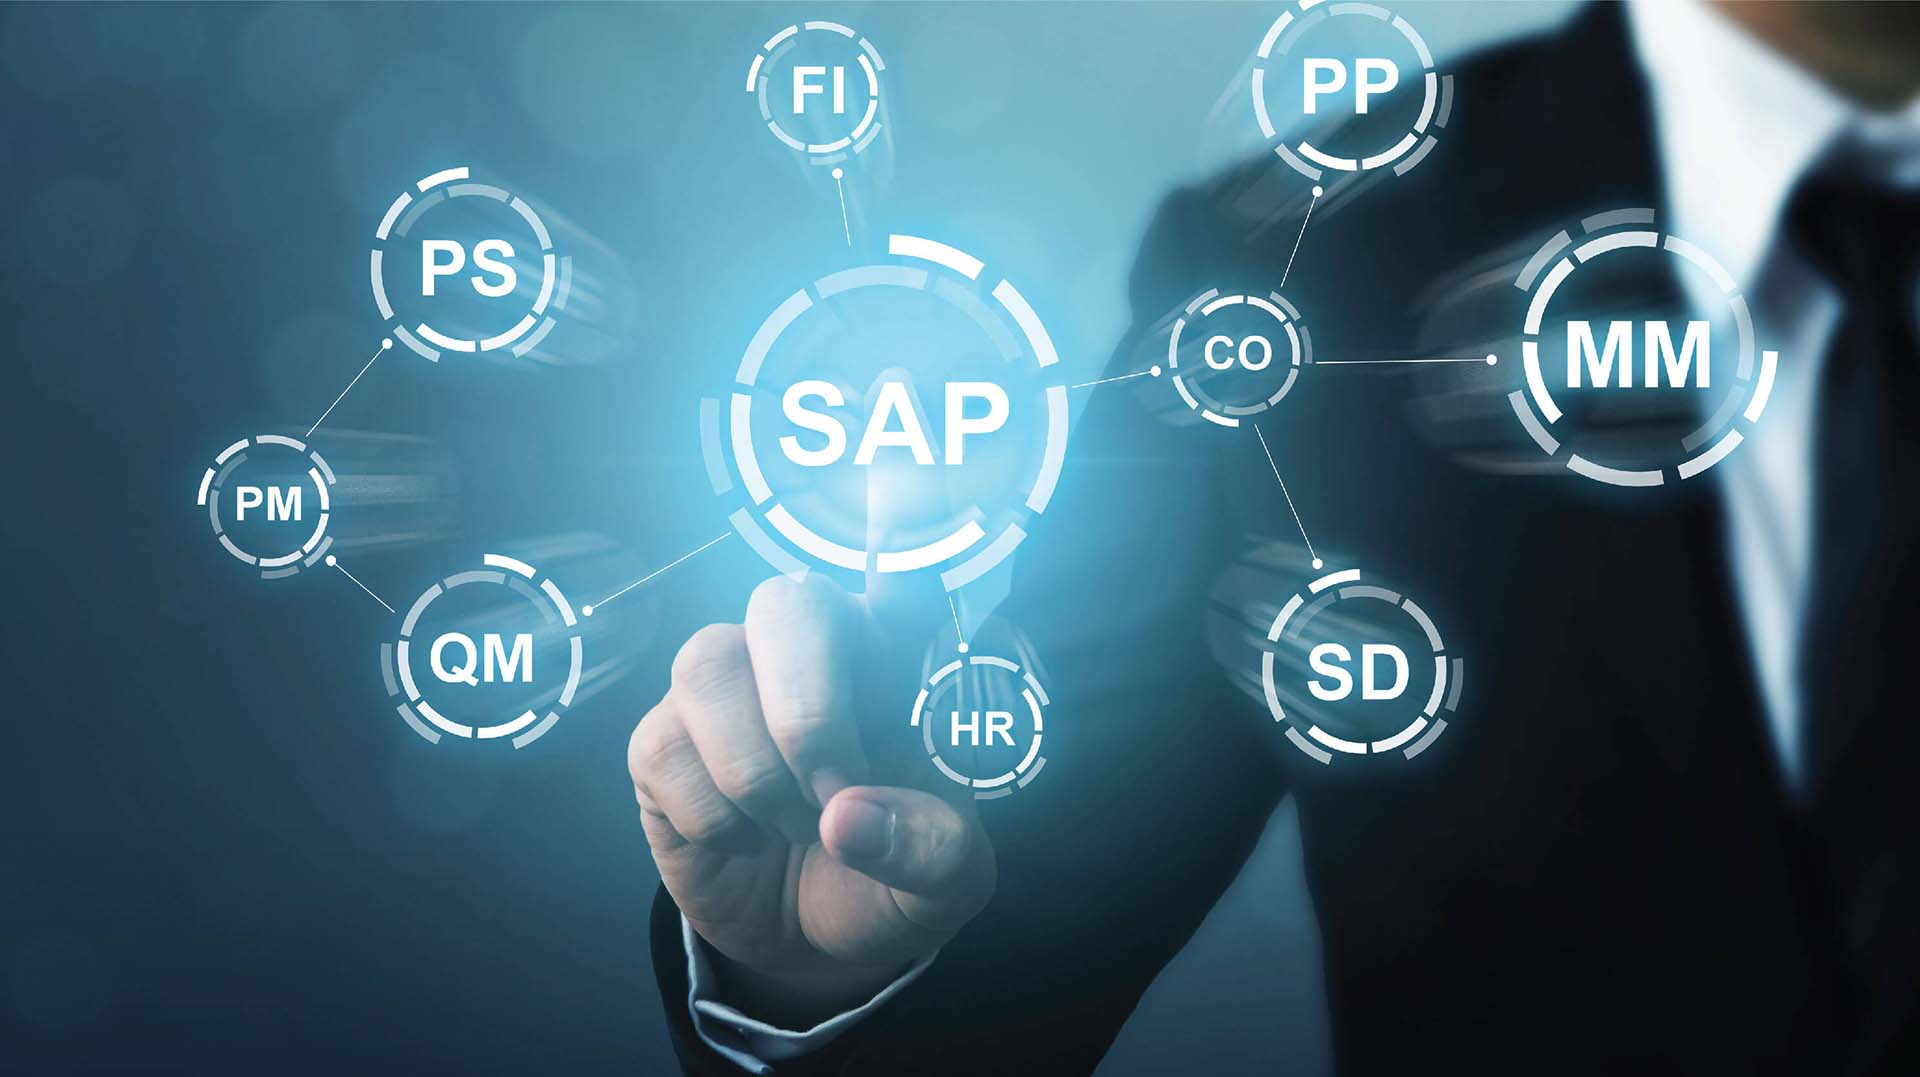 sap-maintenance-support-what-is-the-new-announcement-about